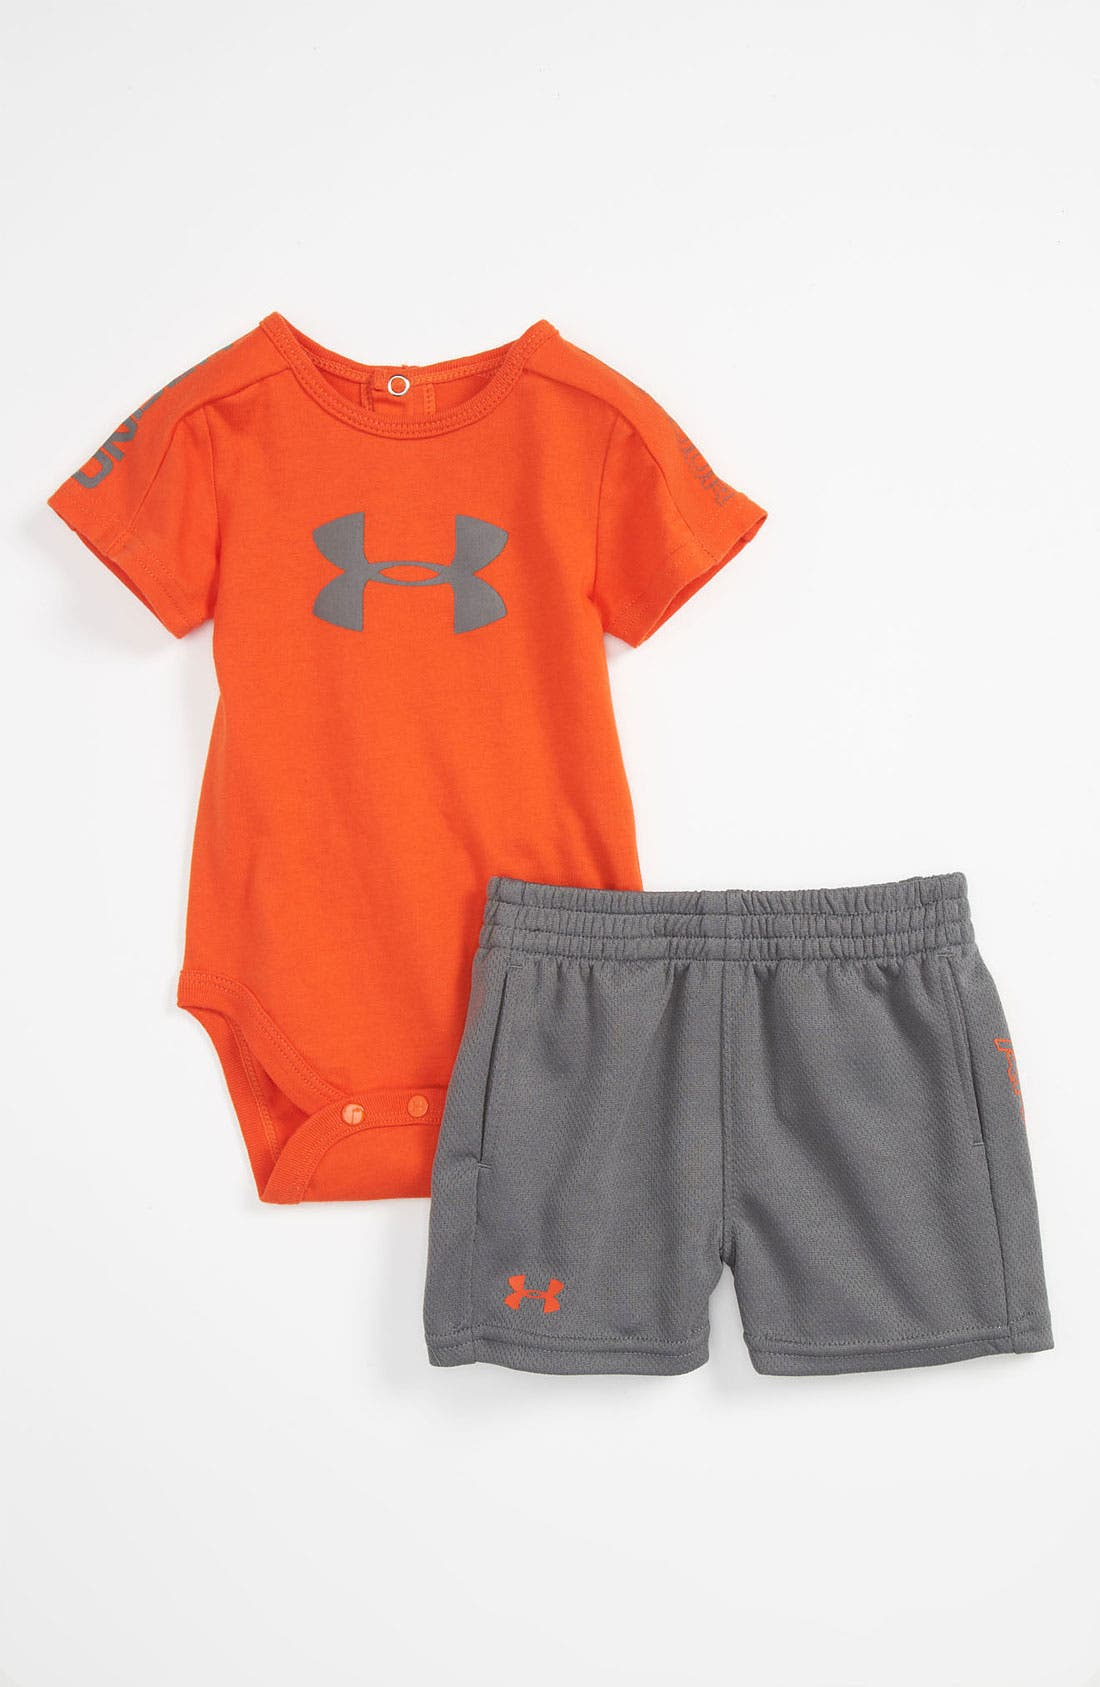 Alternate Image 1 Selected - Under Armour 'Integrity 2.0' Bodysuit & Shorts (Infant)